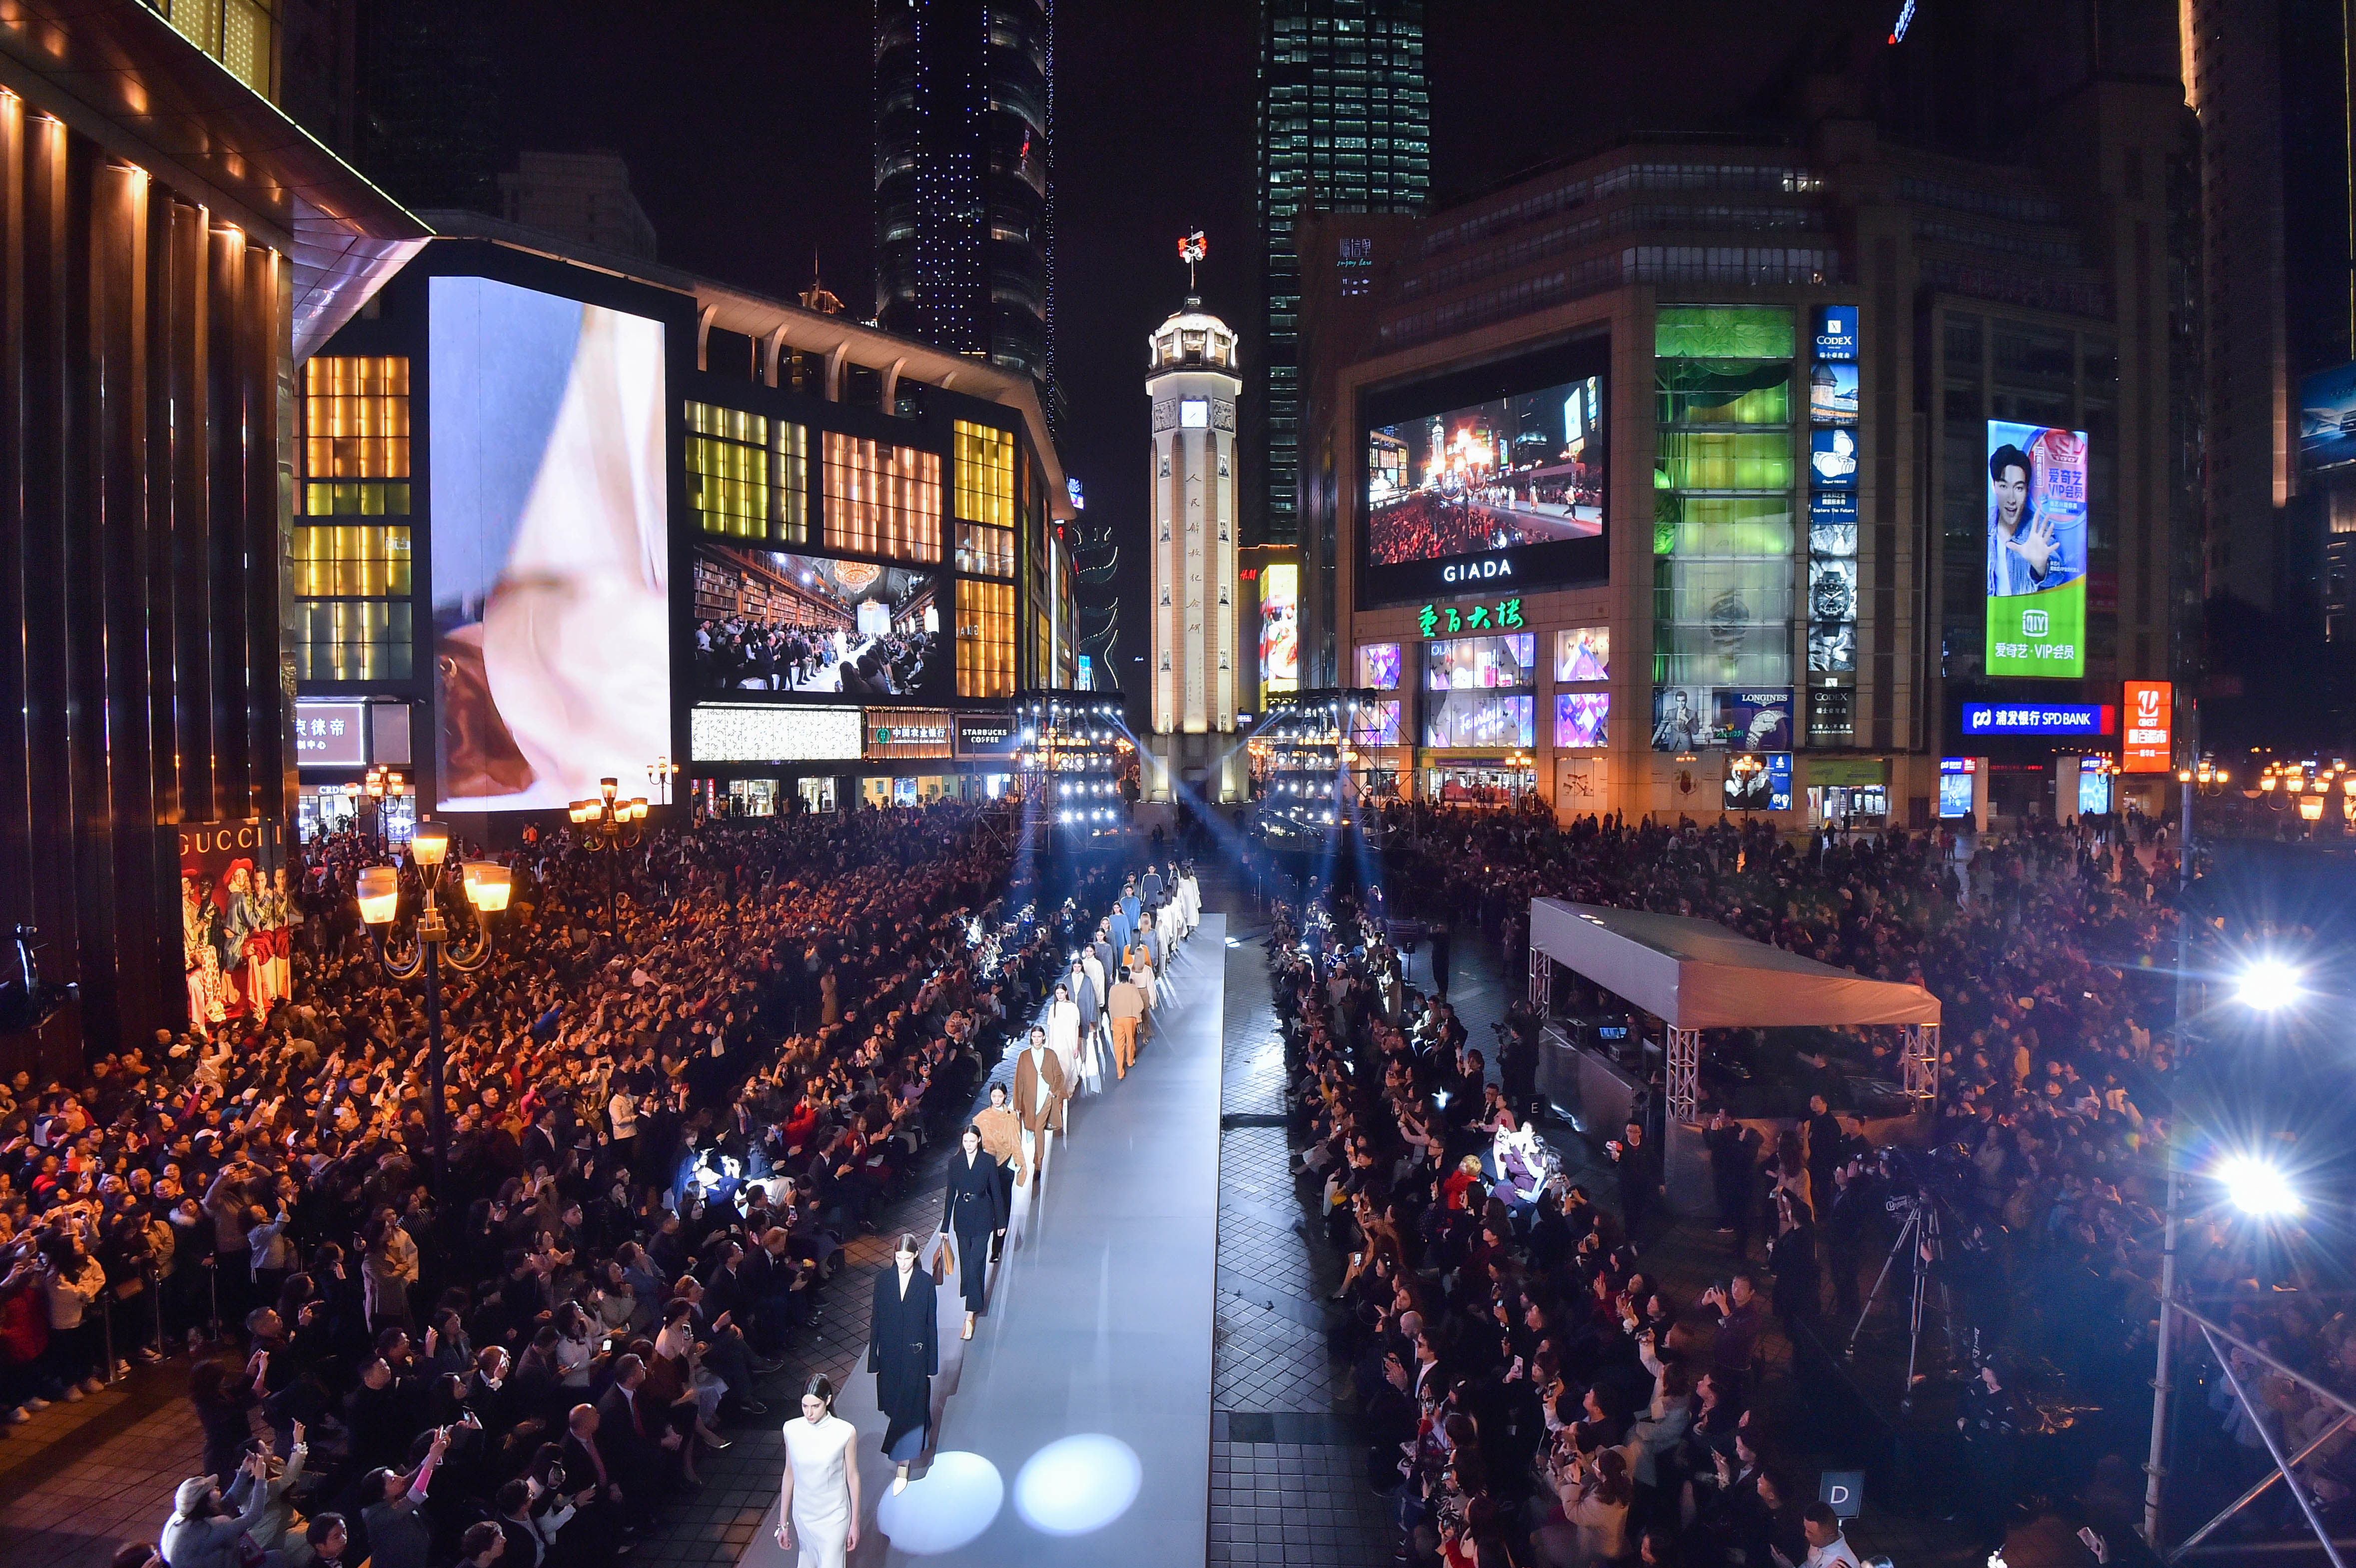 A large crowd gathered in the square to watch the show which was broadcasted on nearby large screens in addition to the 400 invited guests.